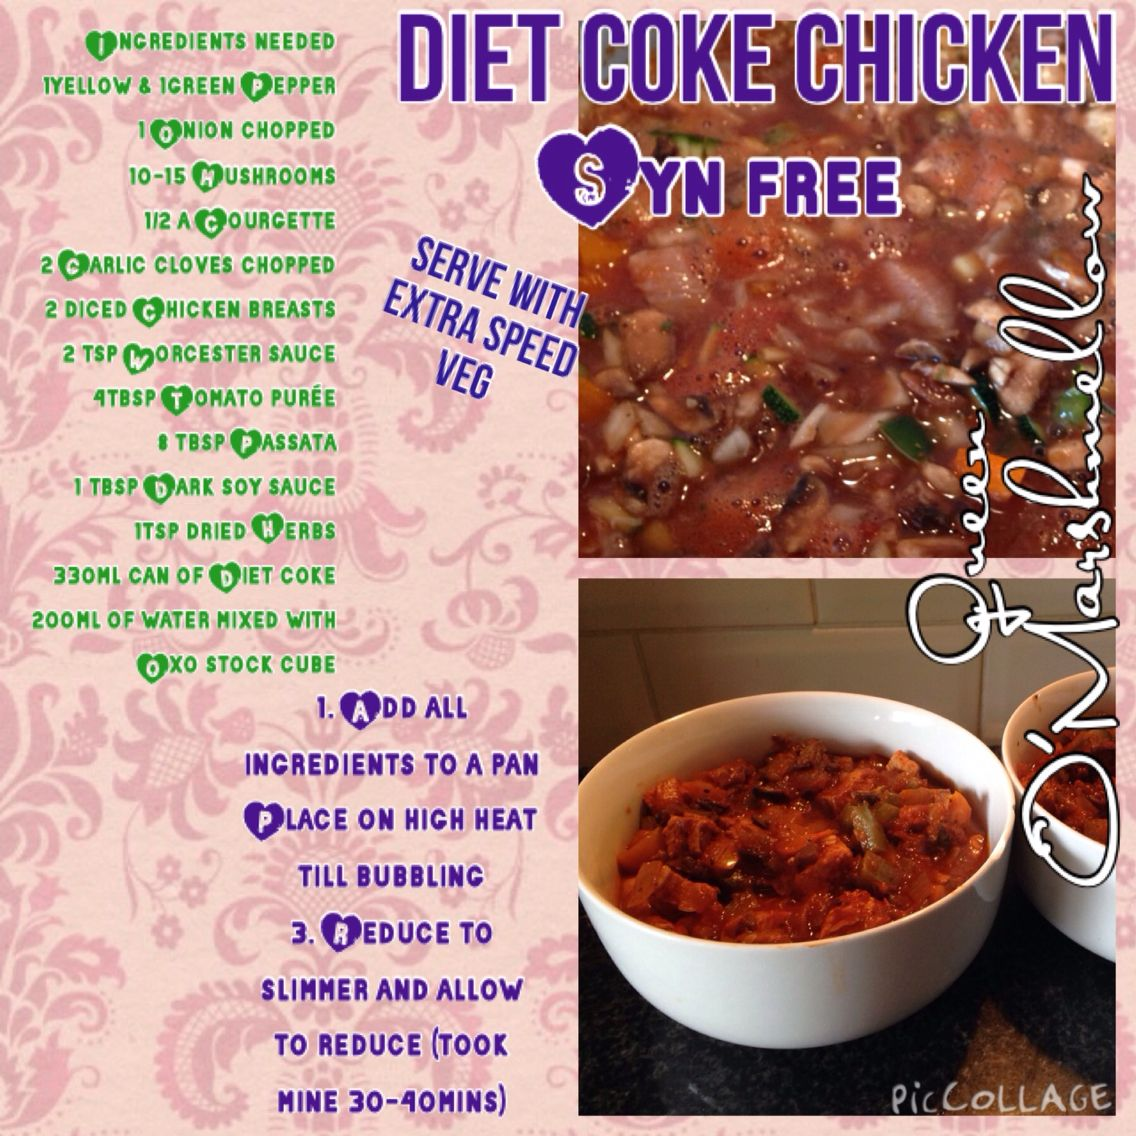 diet coke syn free